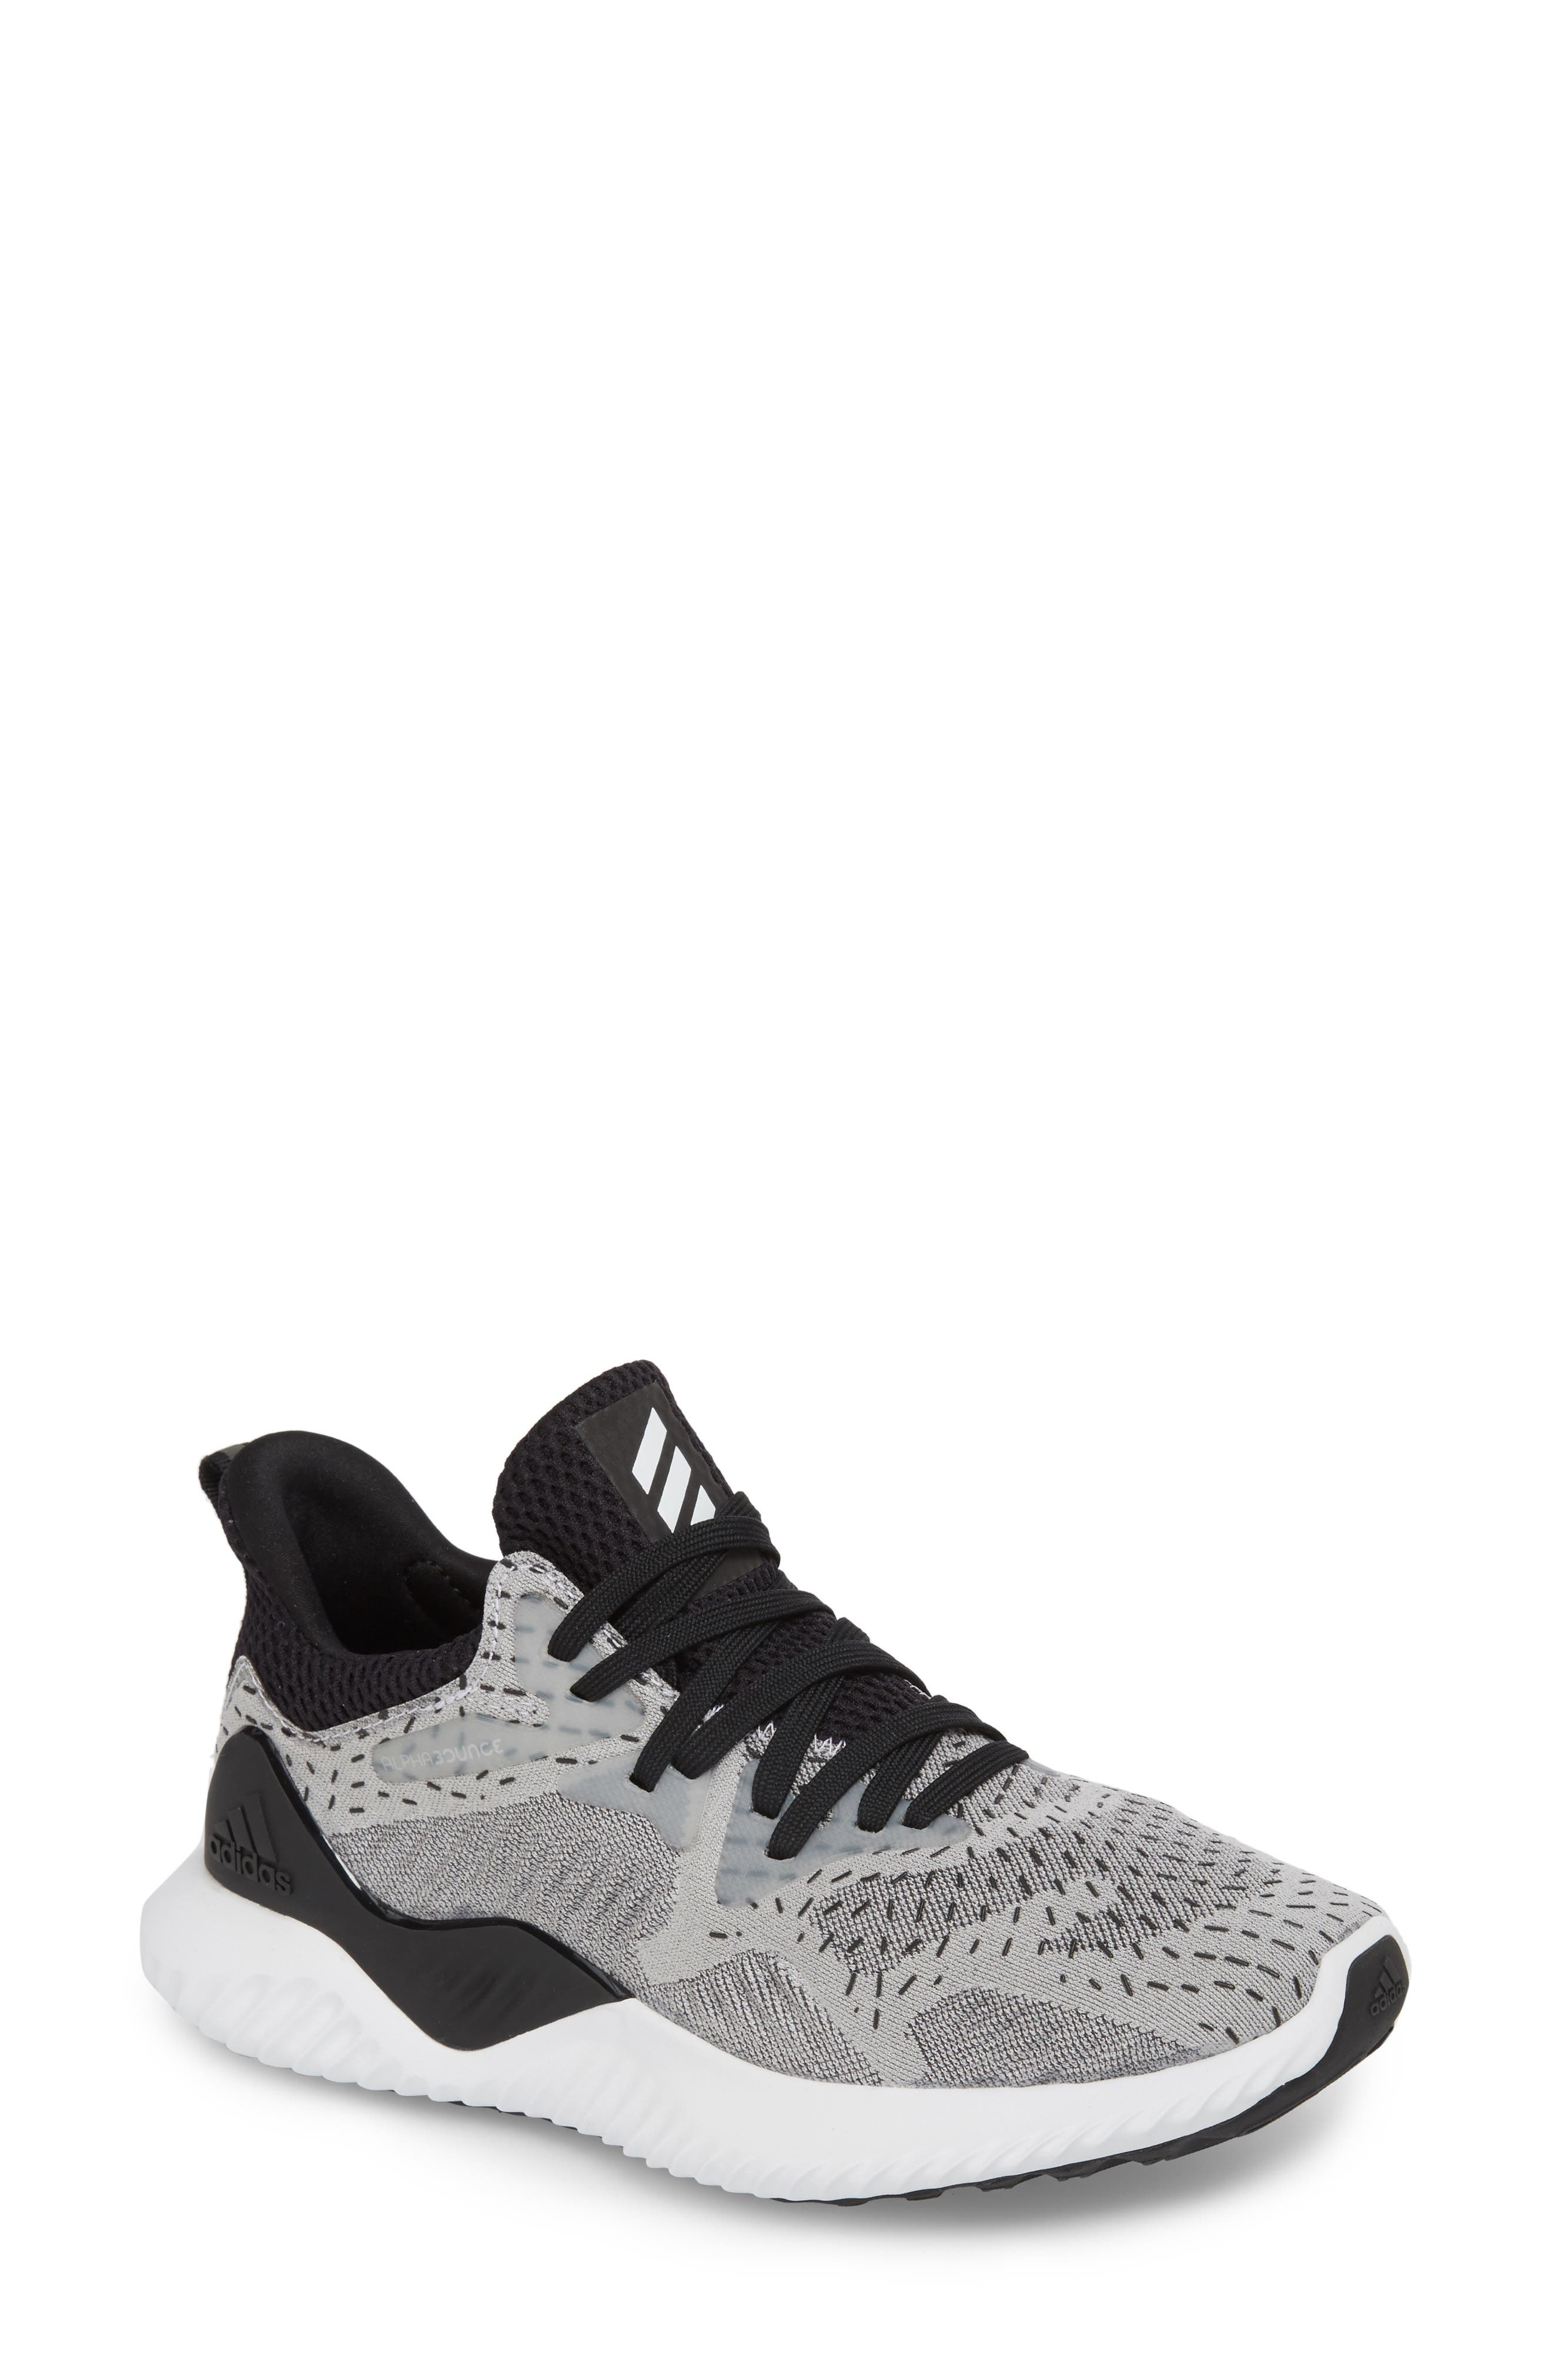 adidas AlphaBounce Beyond Knit Running Shoe (Women)